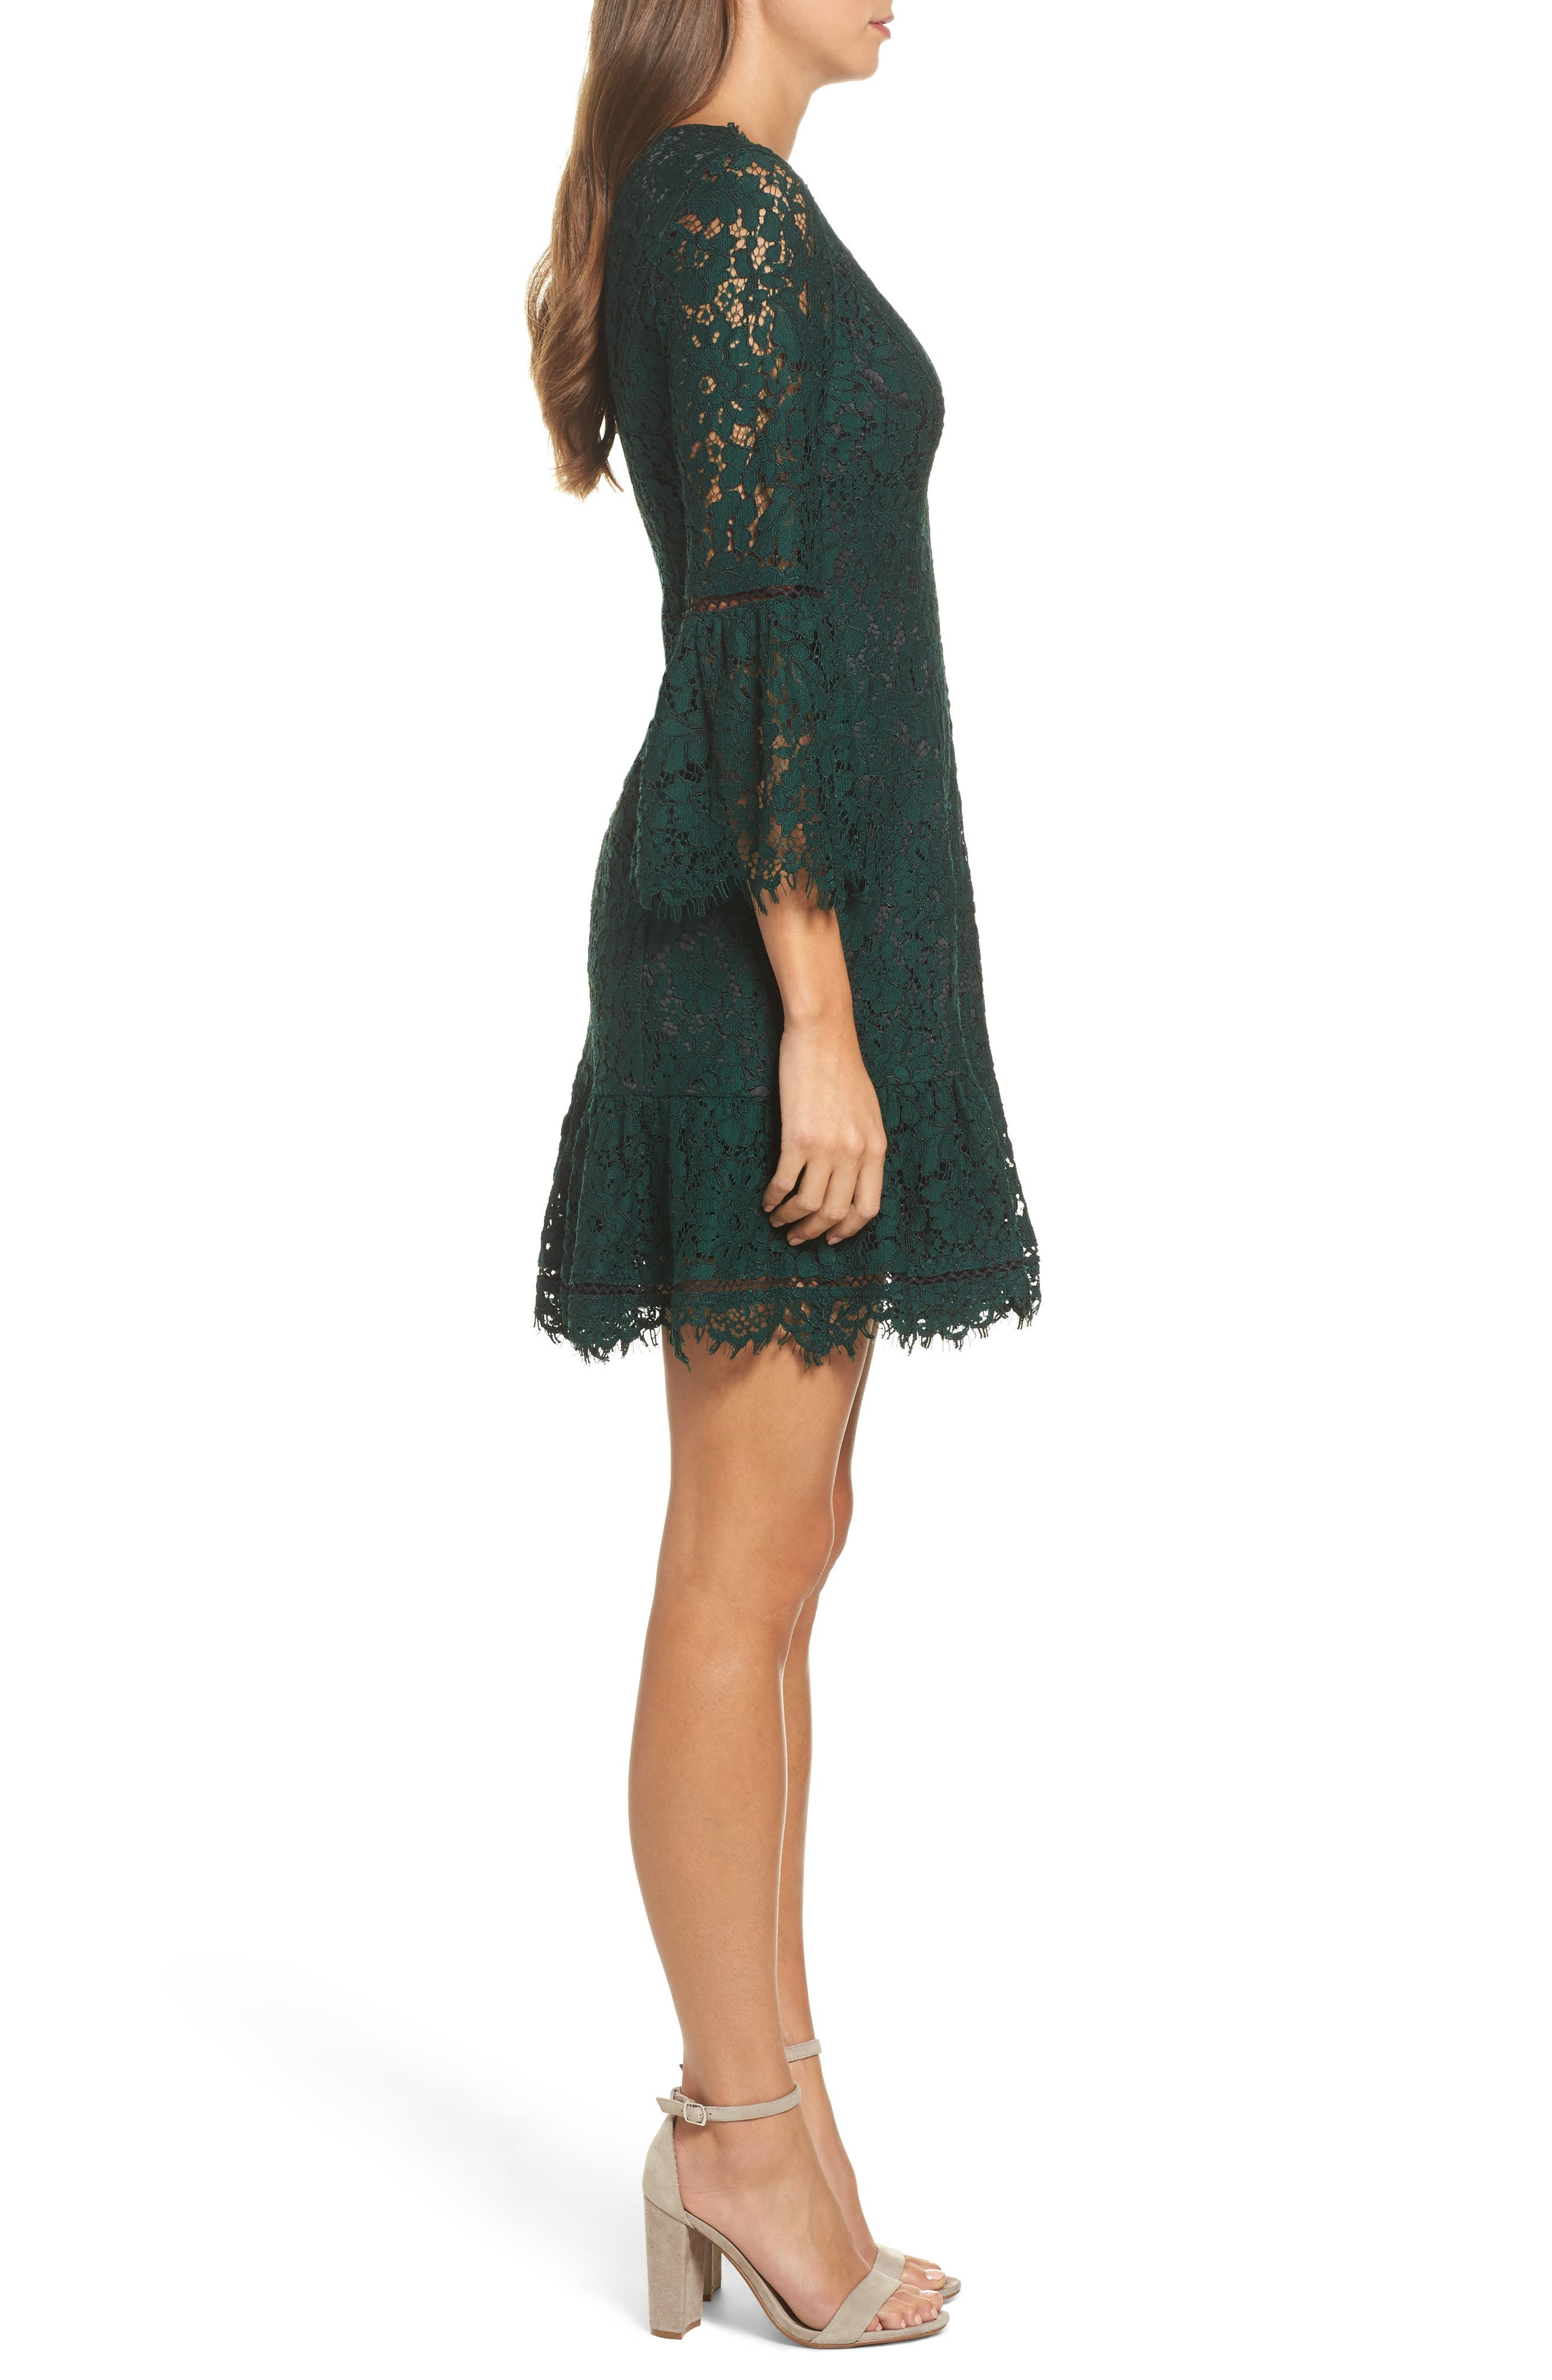 Bell Sleeve Lace Dress,                             Alternate thumbnail 3, color,                             Green/ Black